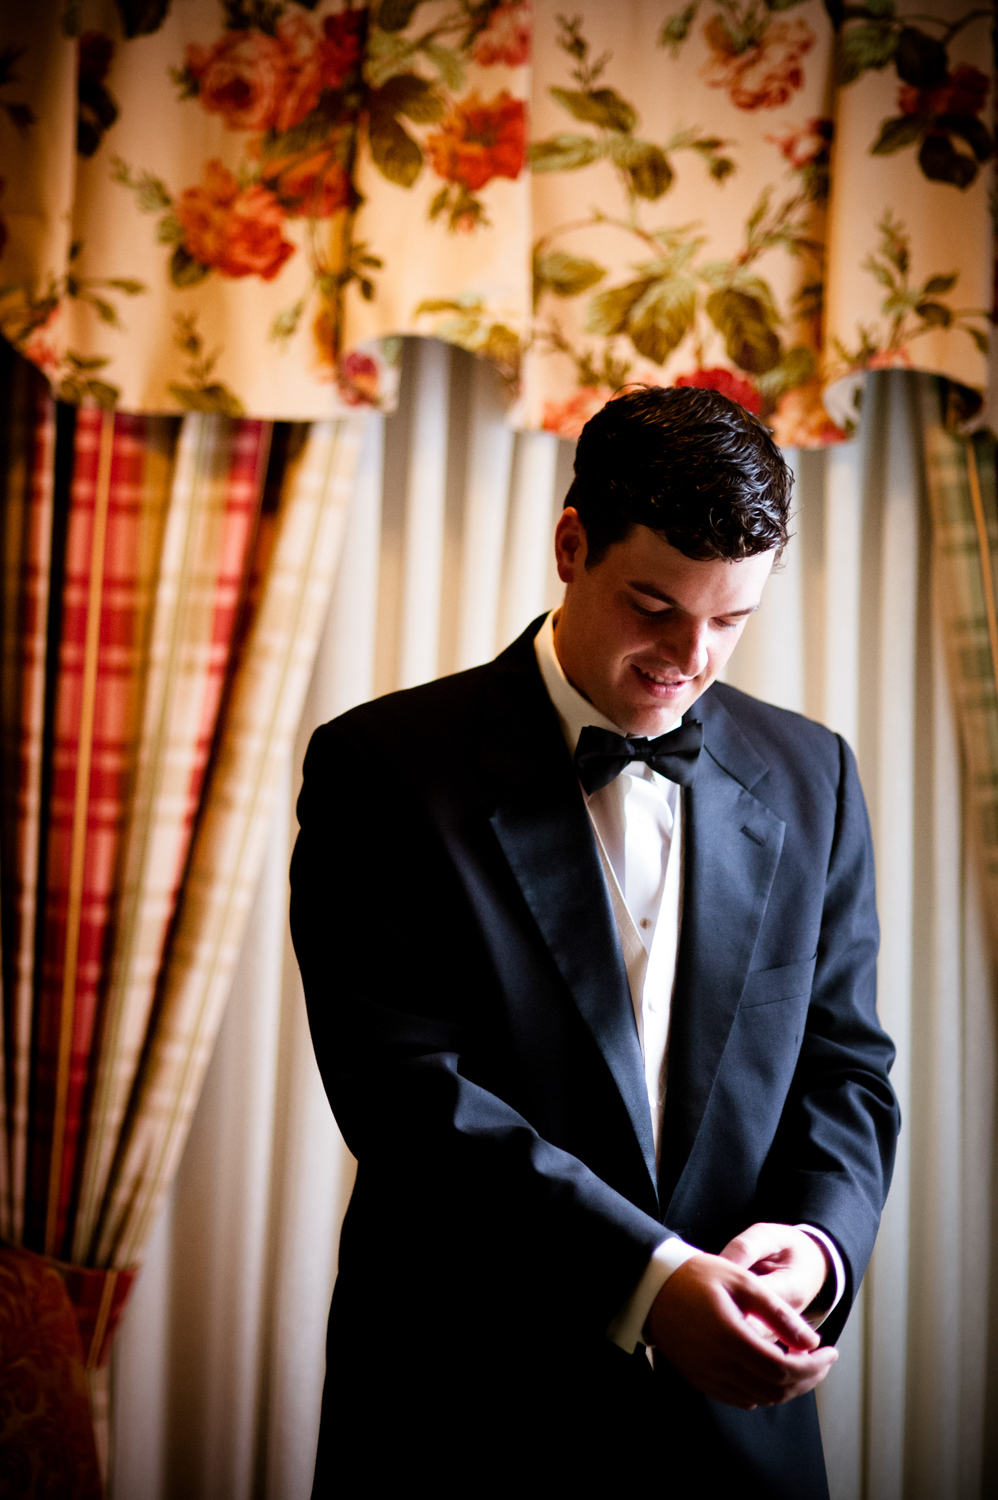 PaigeEden_Weddings_Broadmoor_011.jpg